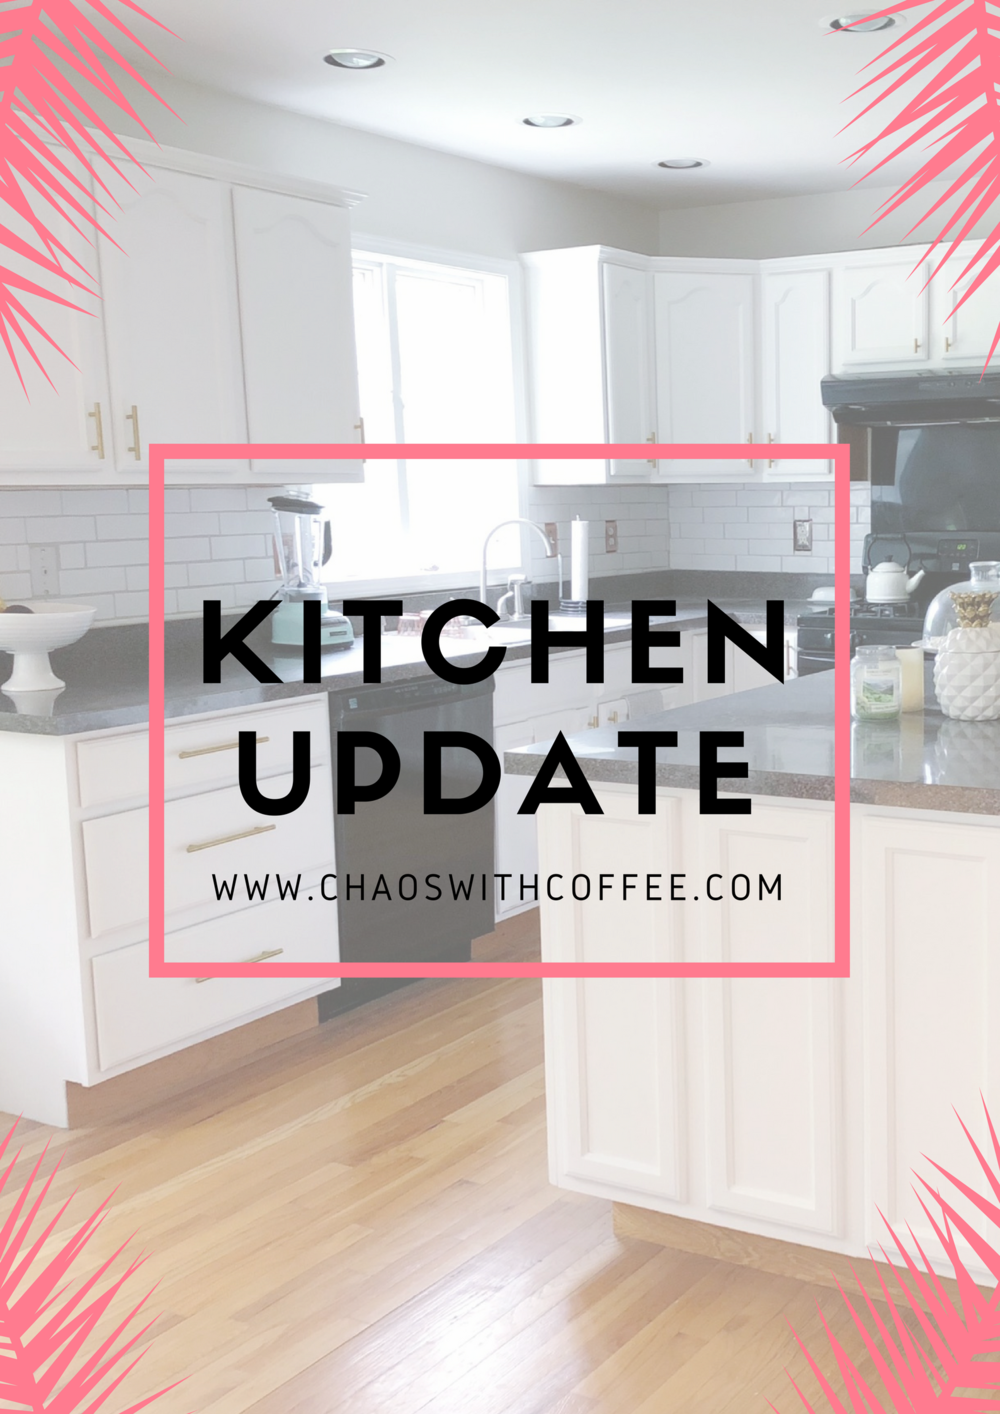 Kitchen Update vis Chaos With Coffee